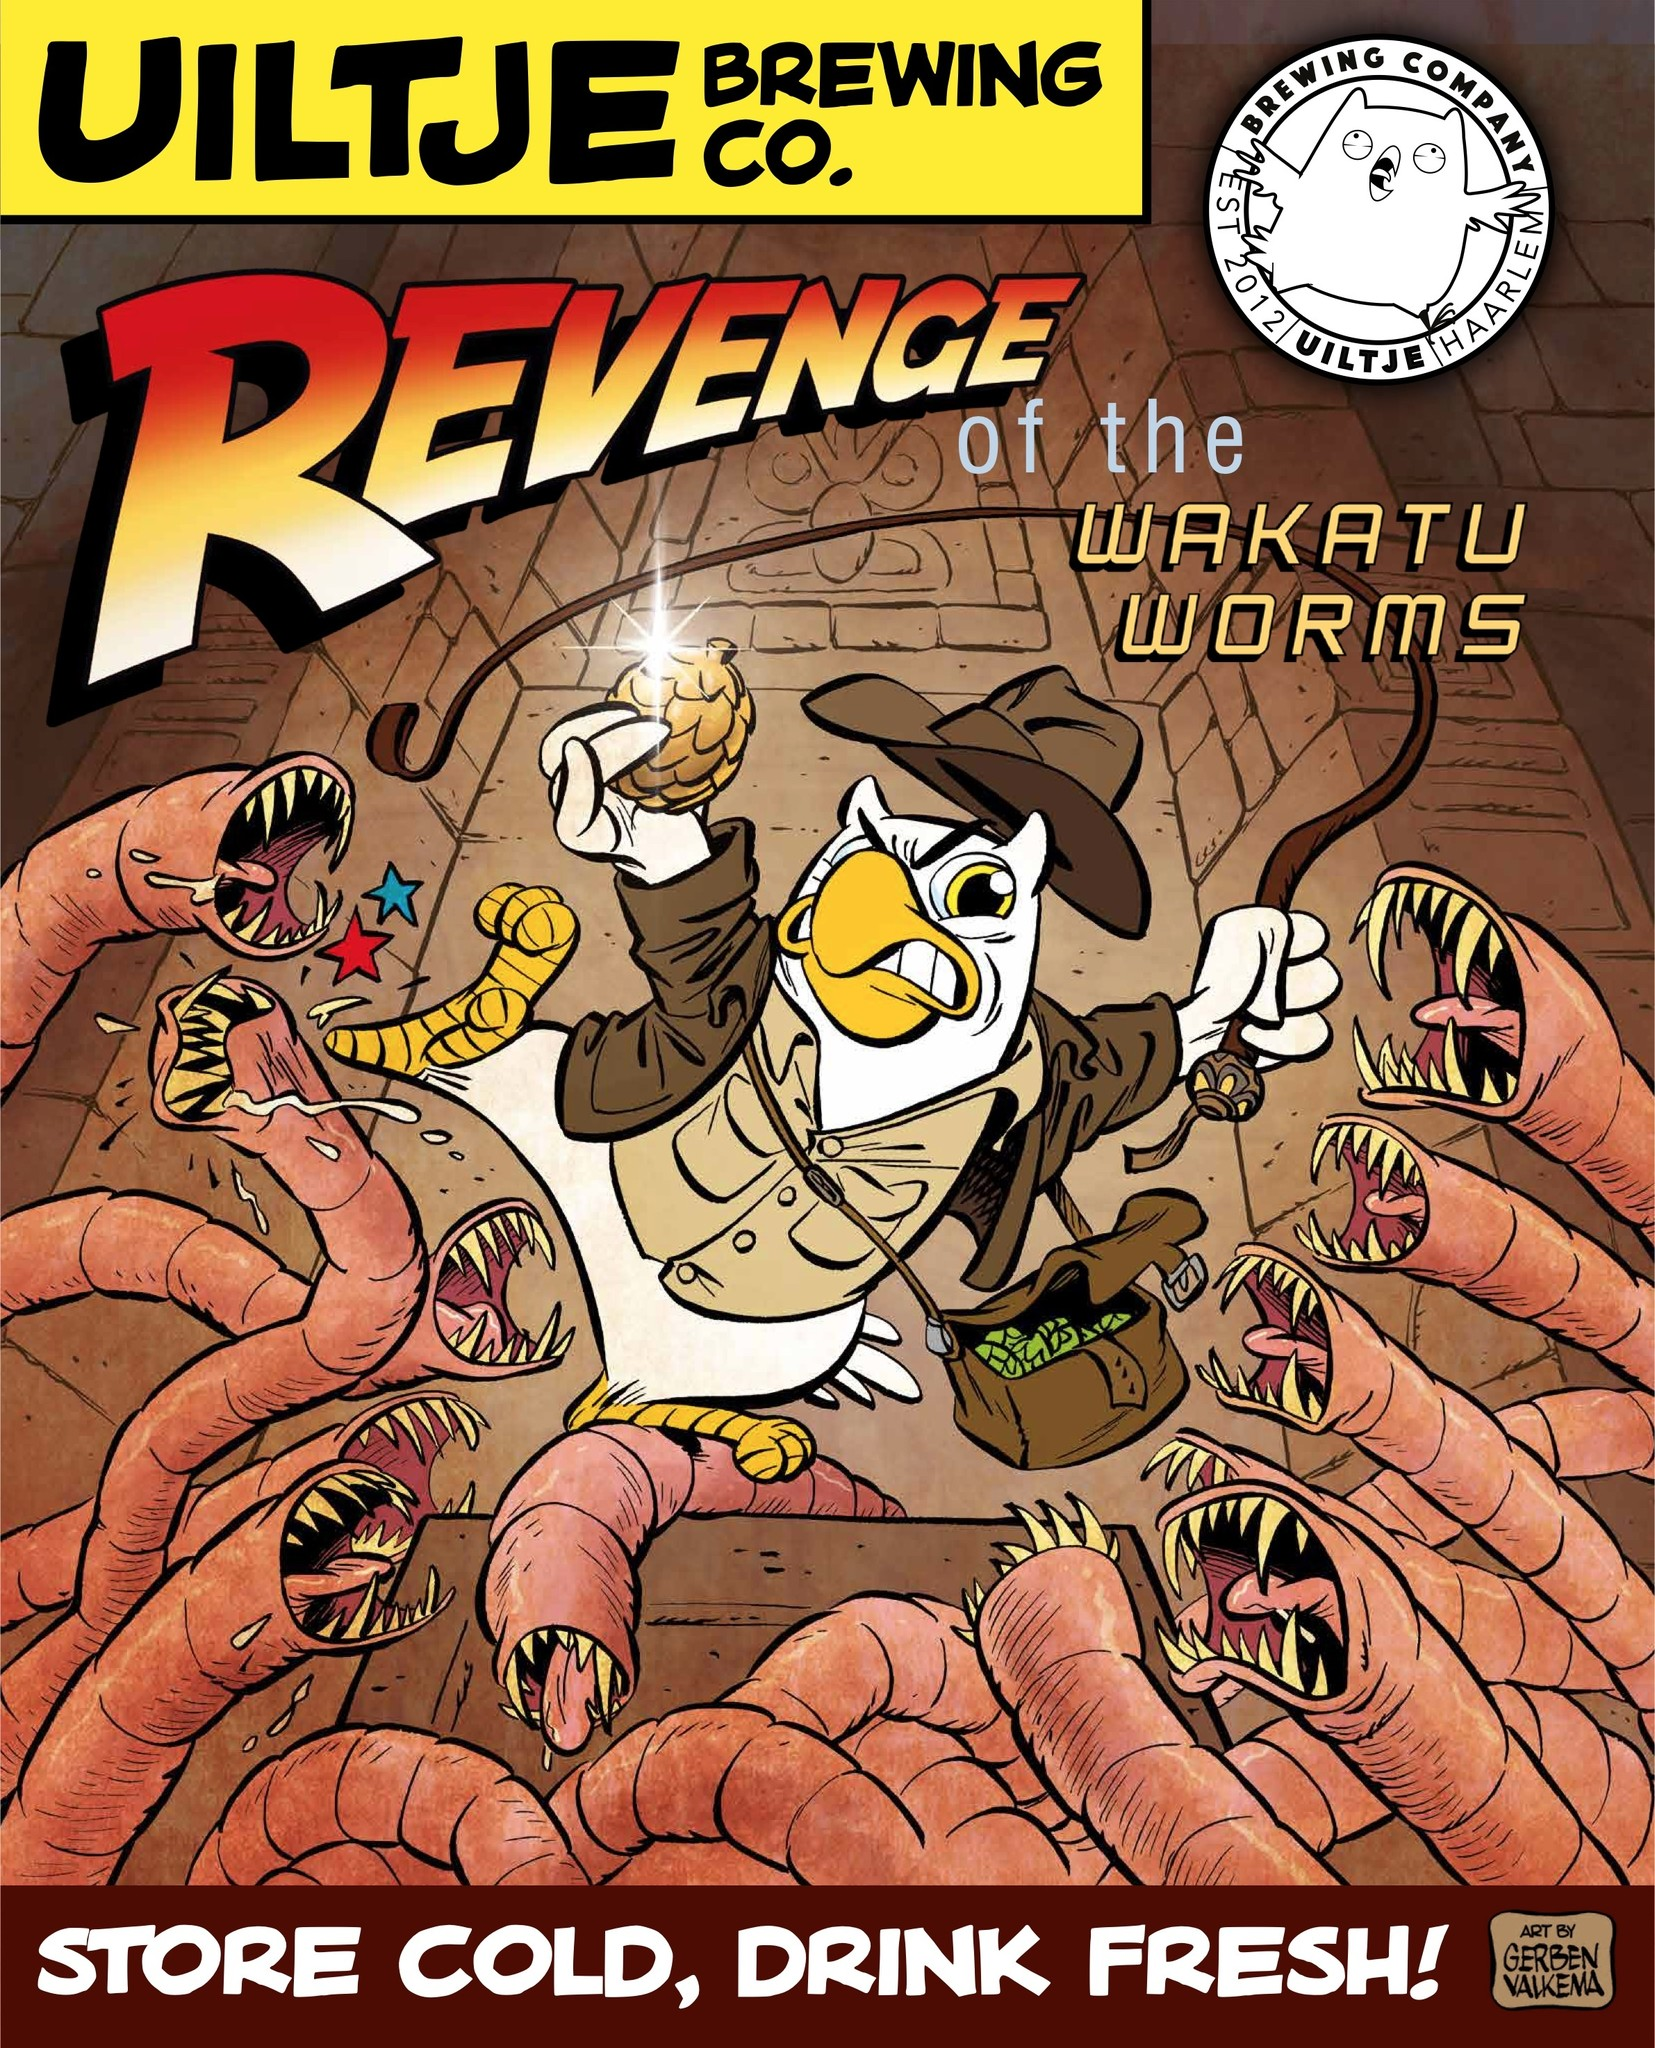 Uiltje- Revenge of the Wakatu Worms- Poster